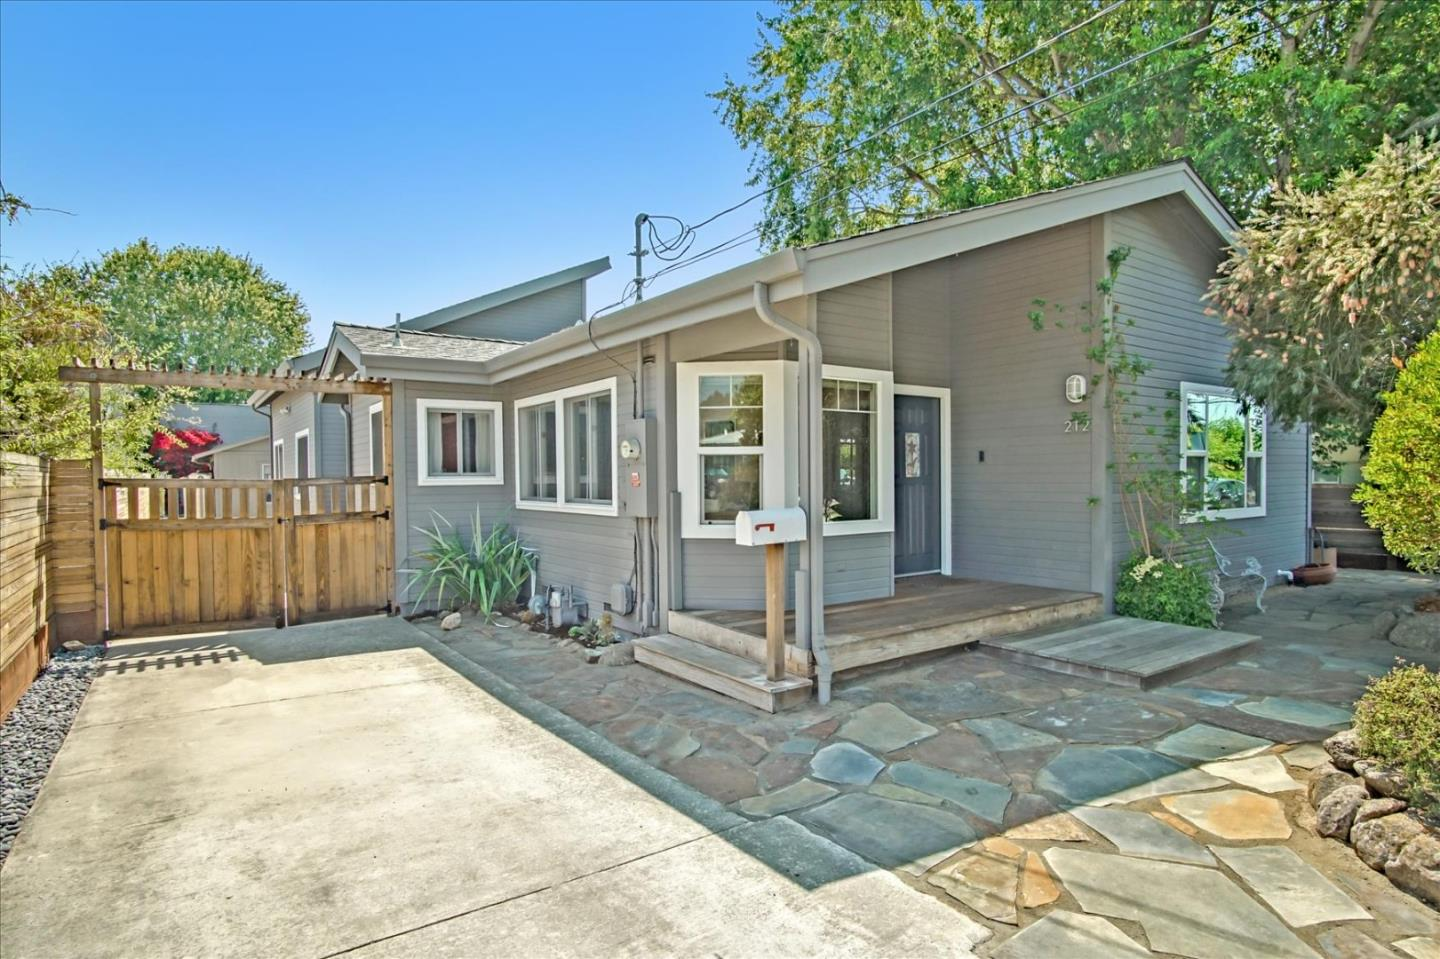 Detail Gallery Image 1 of 1 For 212 Trevethan Ave, Santa Cruz,  CA 95062 - 4 Beds | 2 Baths